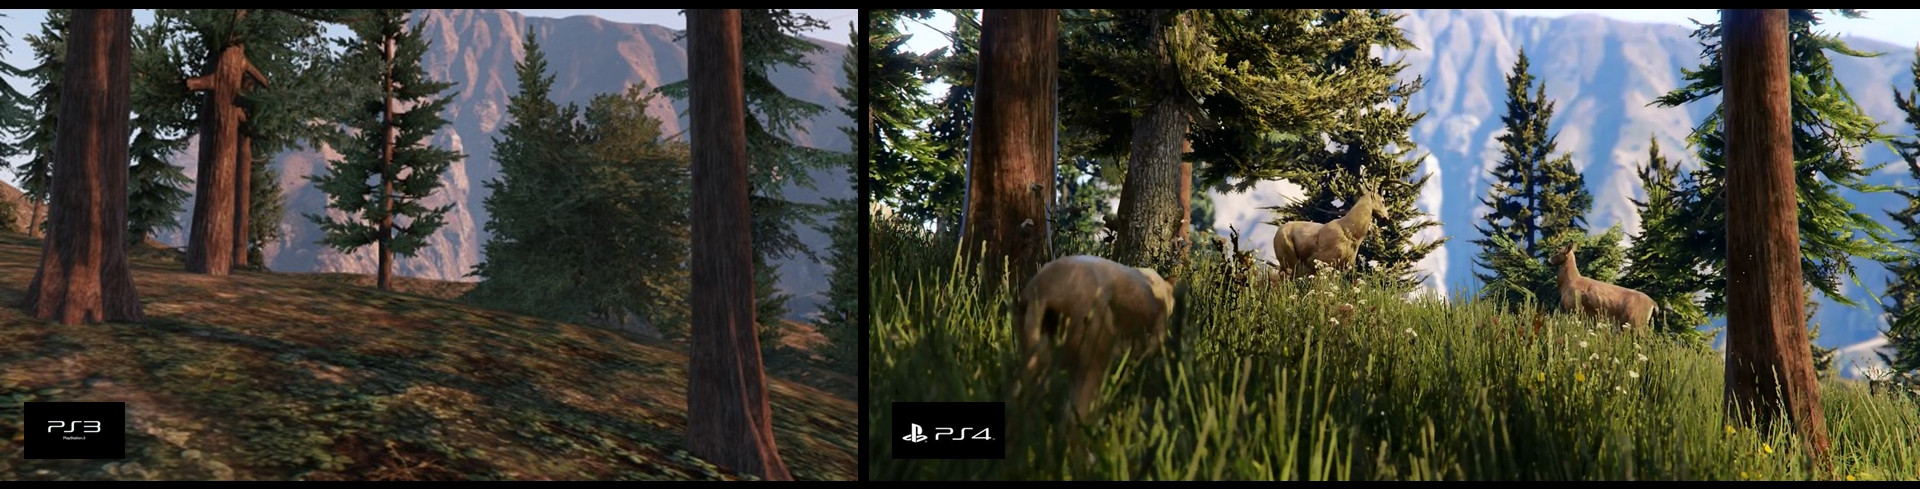 http://www.gamepur.com/files/imagepicker/6/gta-v-ps4-vs-ps3-comparison-screen-1.jpg